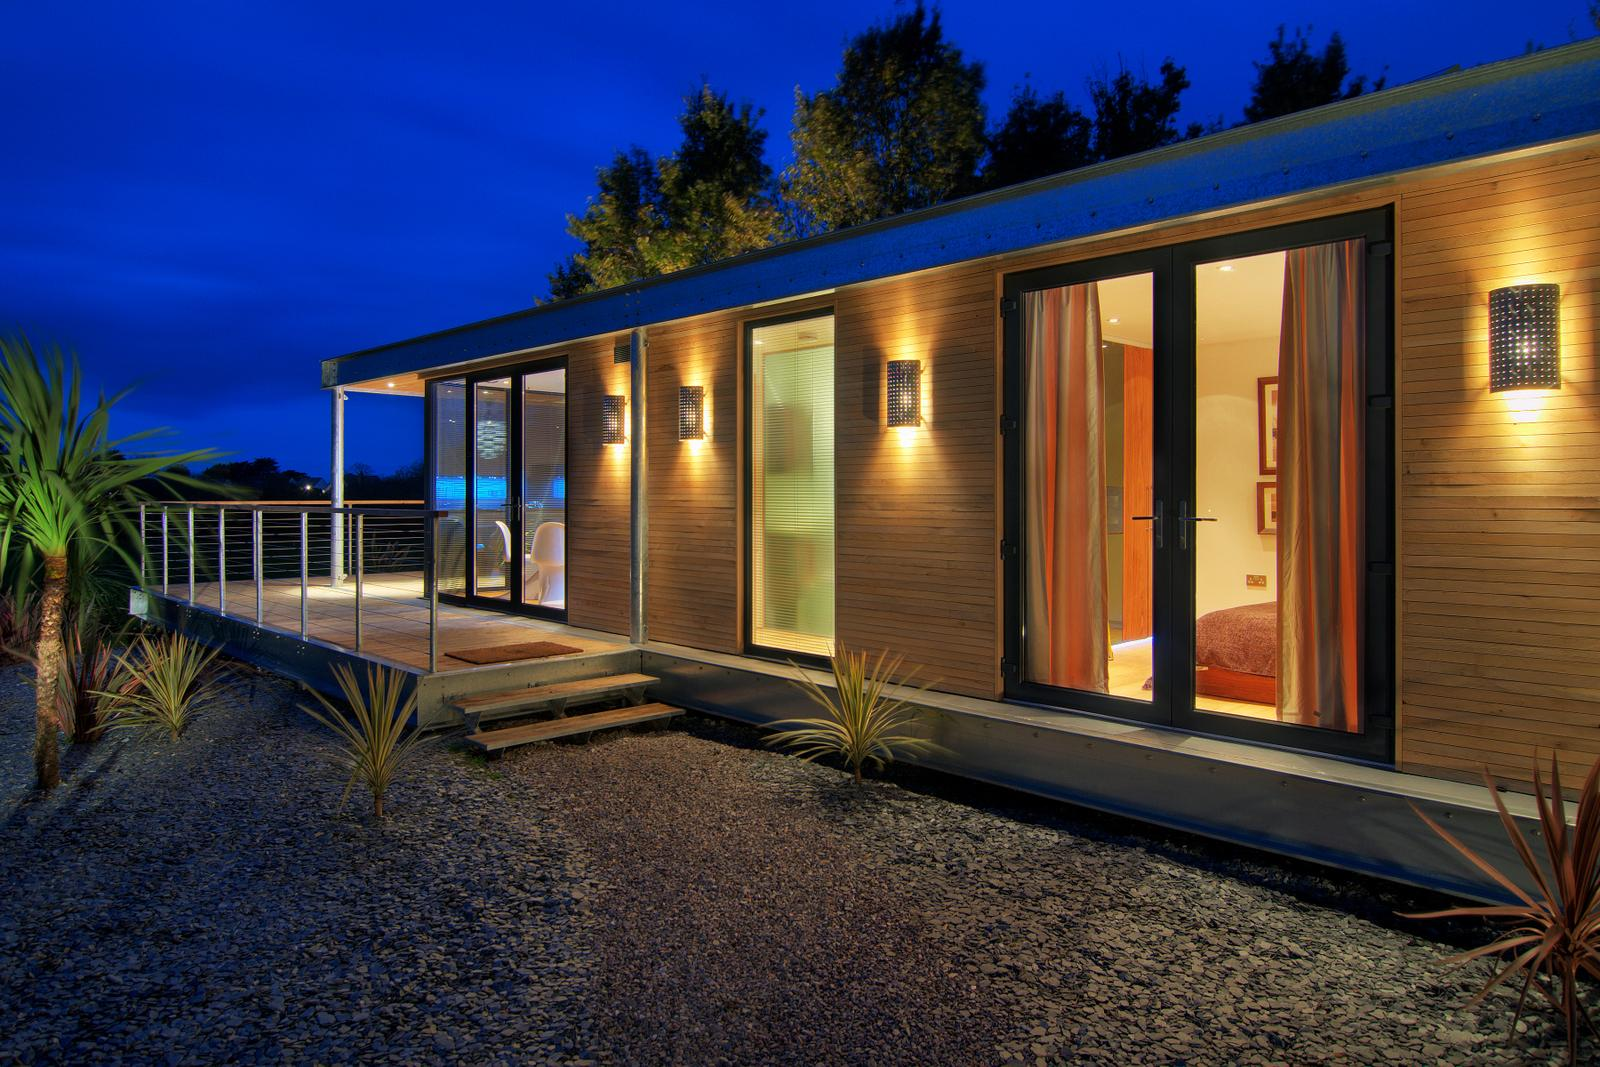 Gallery the edge modular home boutique modern small for 900 sq ft modular home